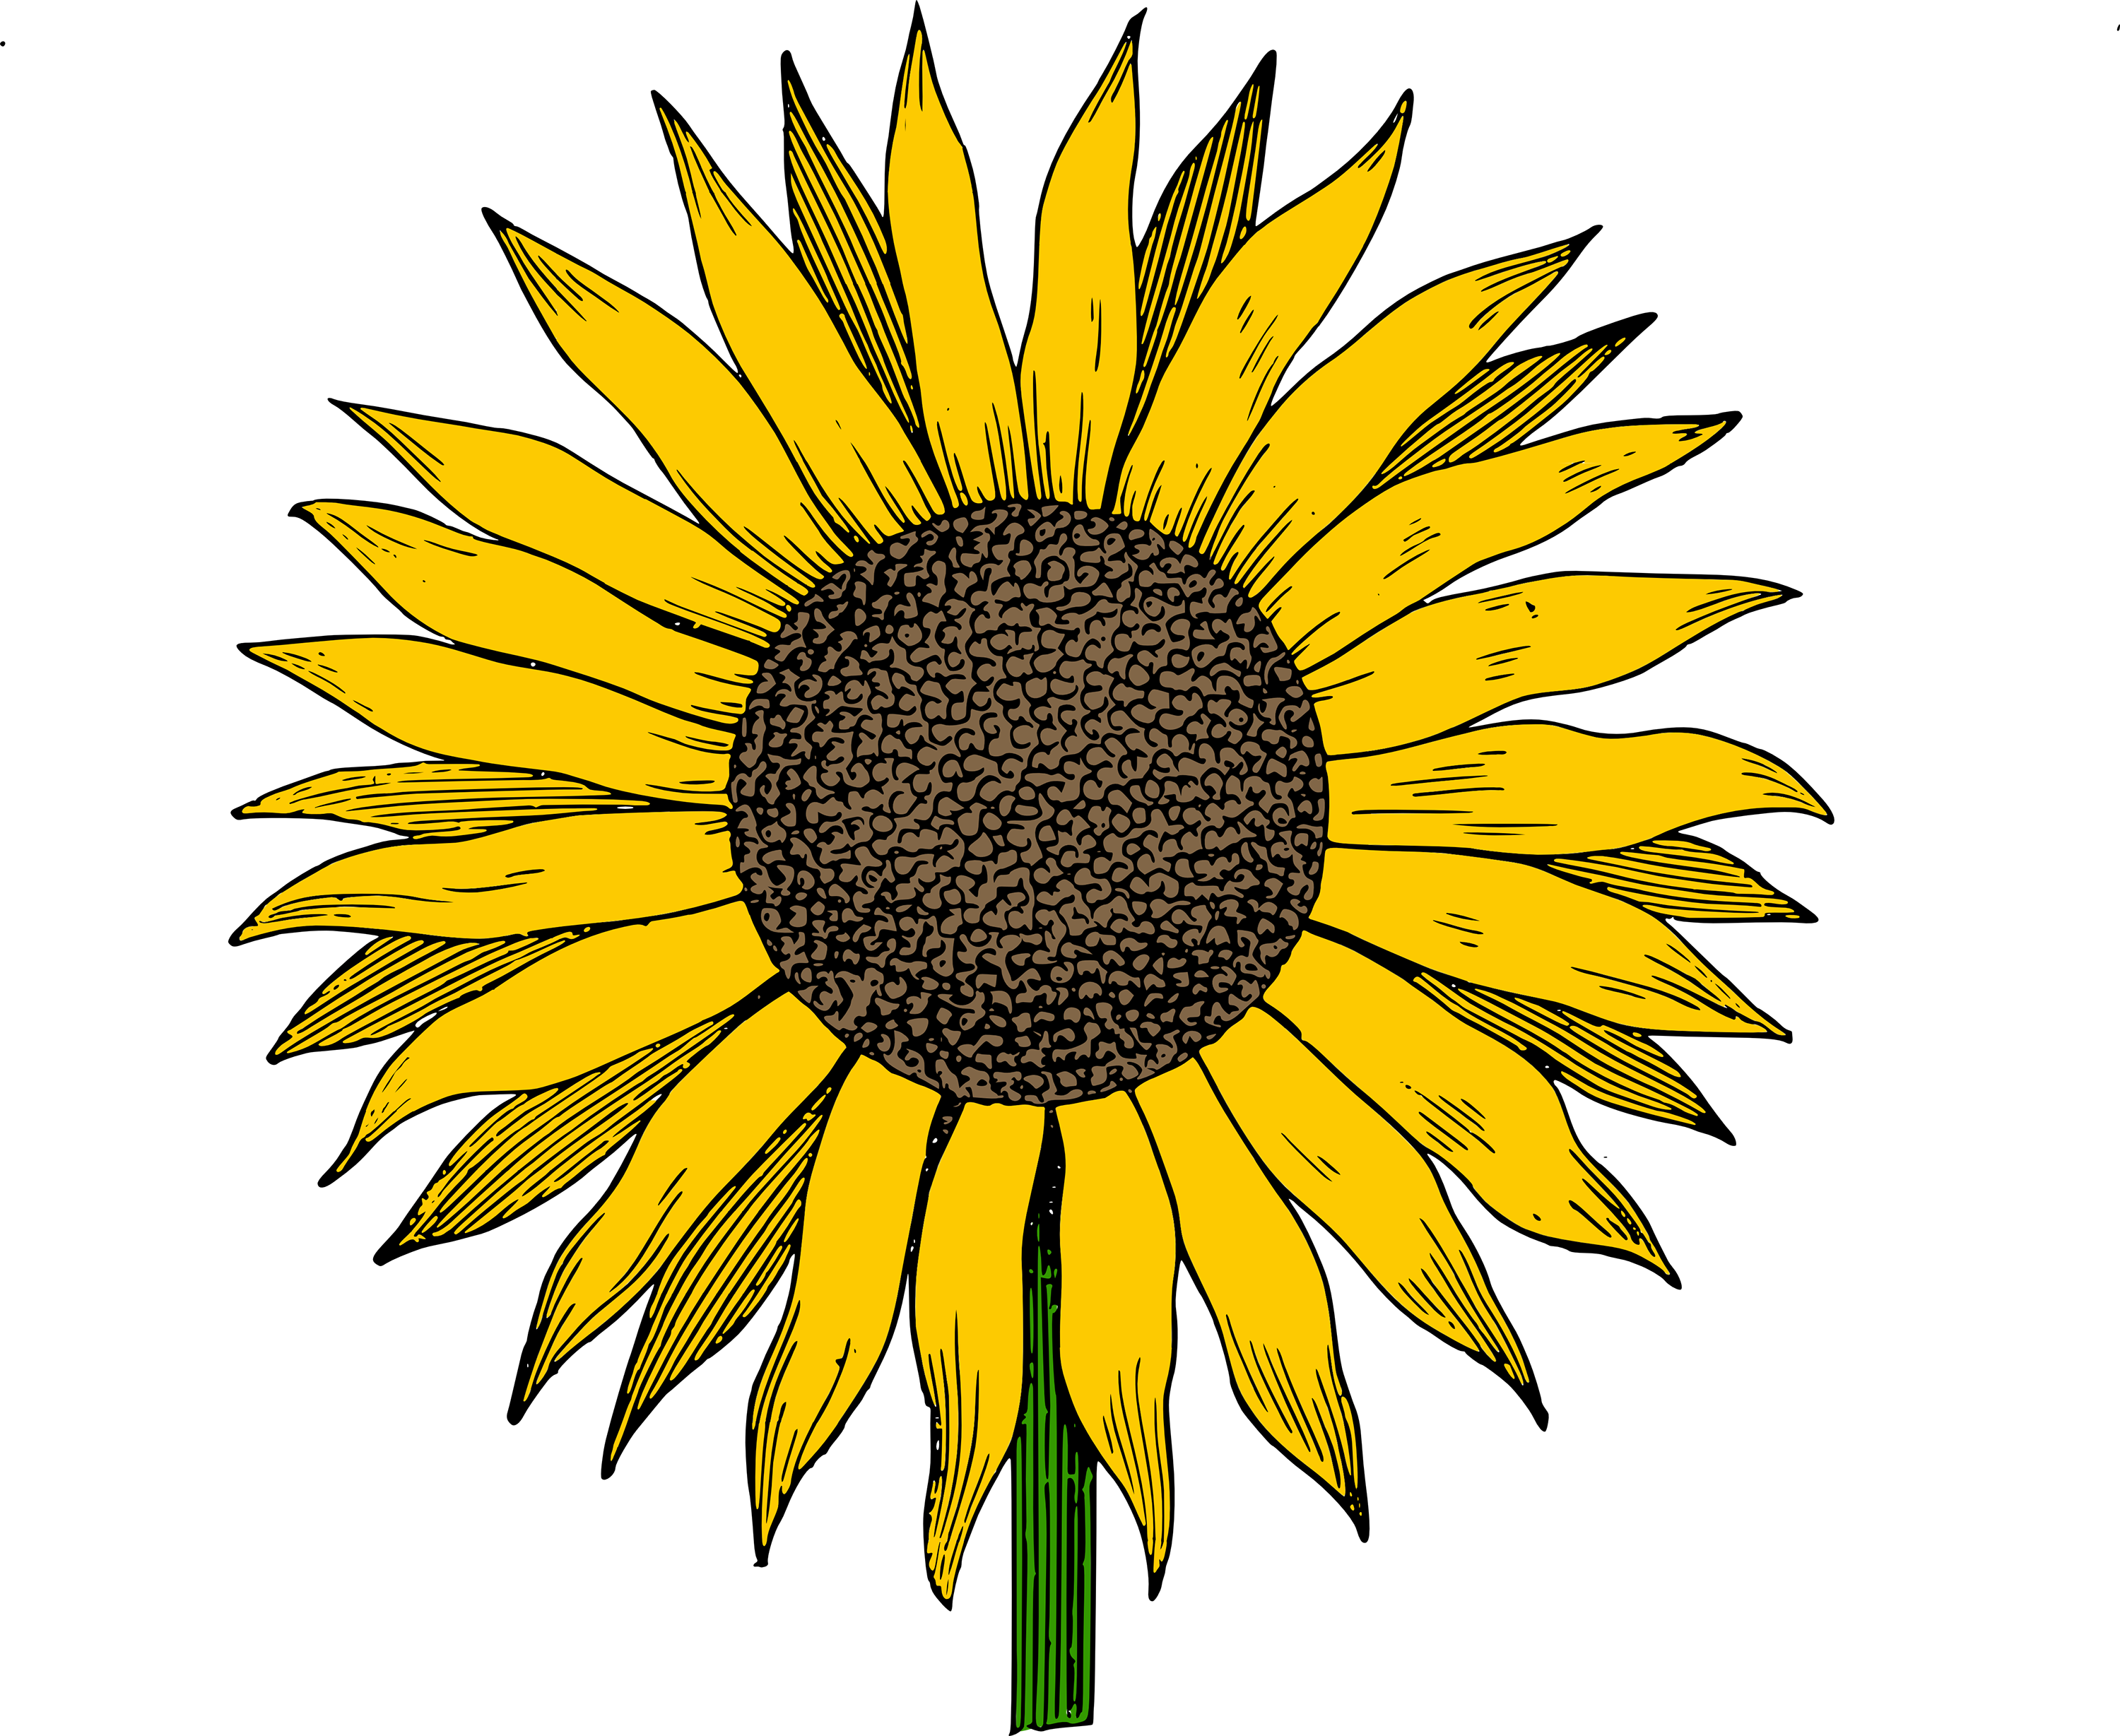 Sunflower vector png, Sunflower vector png Transparent FREE.